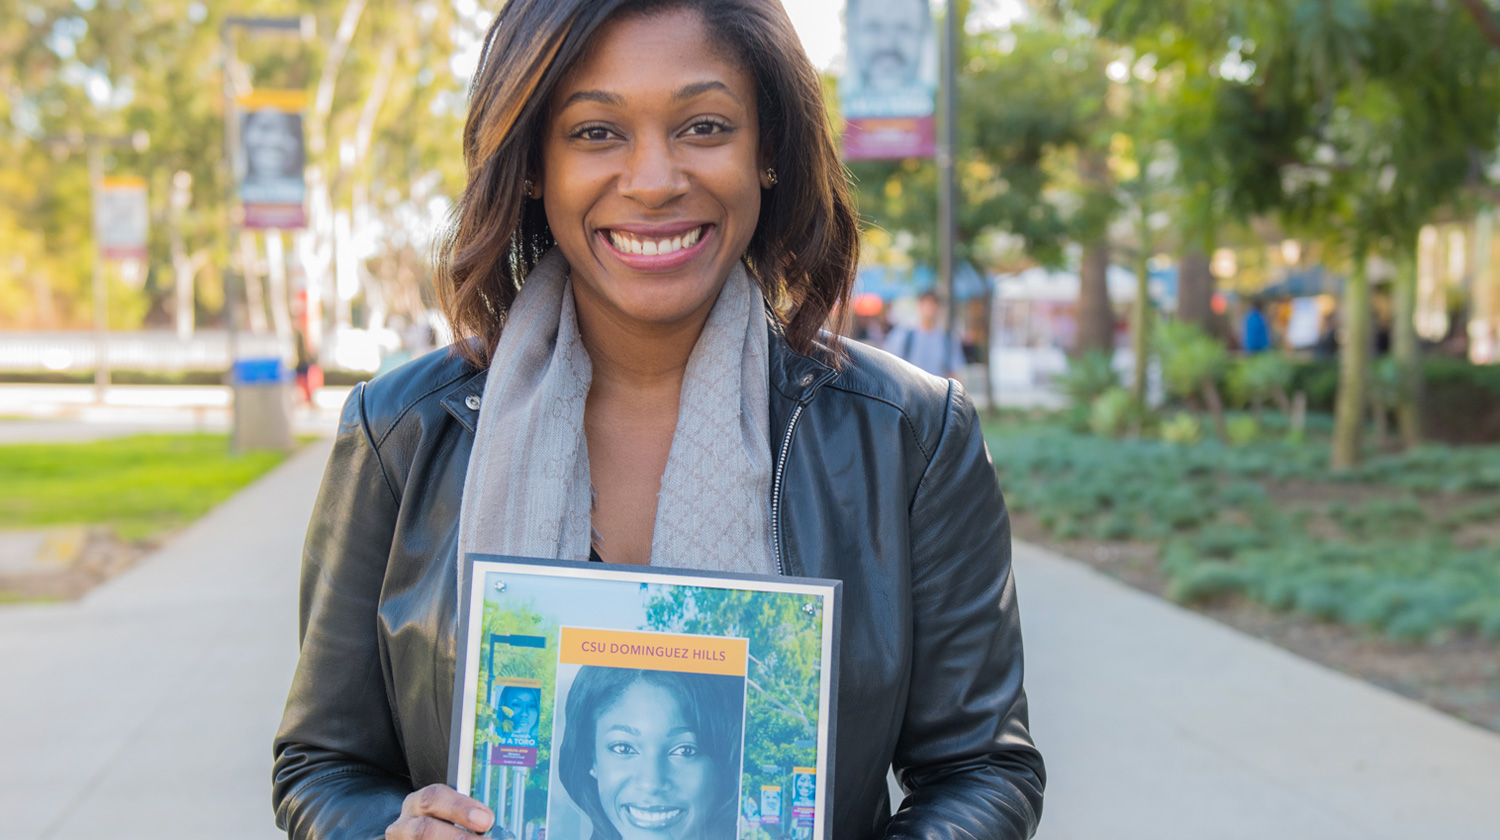 Photo of CSUDH Alumn Markette Sheppard on campus holding her 'I'm a Toro' plaque